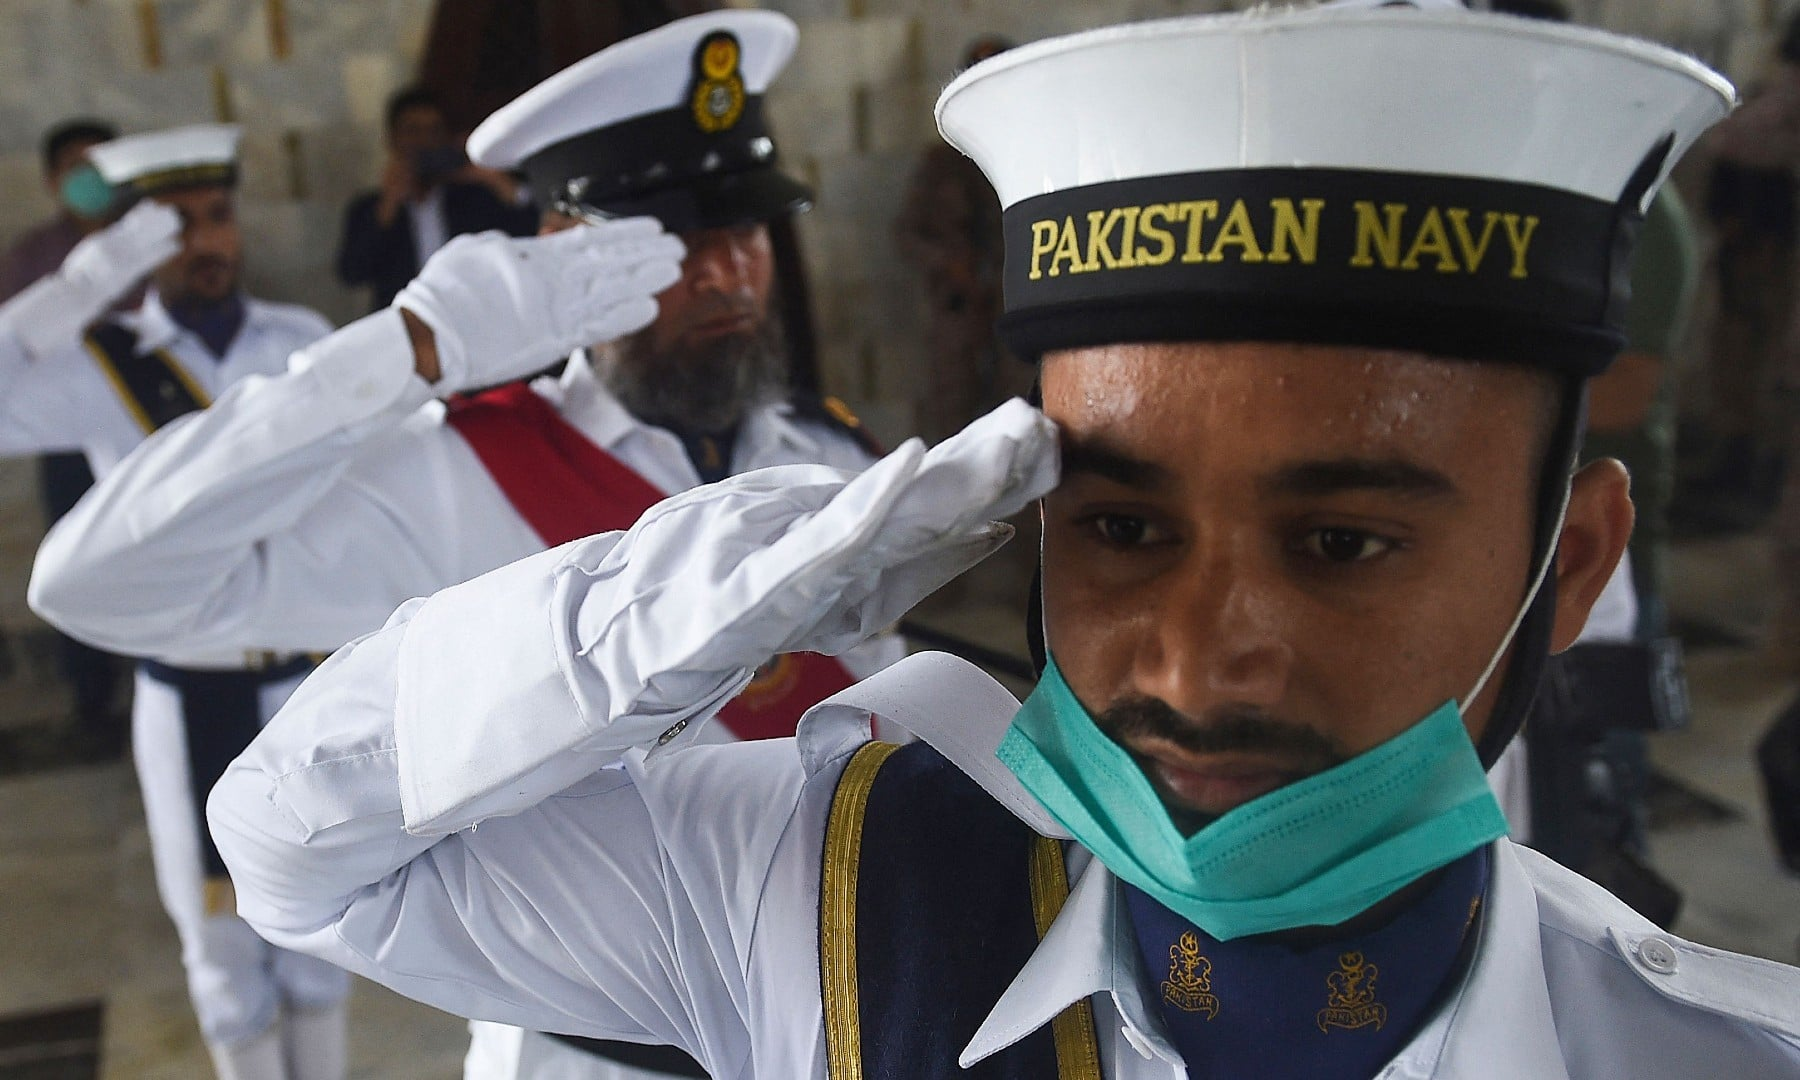 Pakistani Naval soldiers salute at the mausoleum of Pakistan's founding father Muhammad Ali Jinnah during Independence Day celebrations in Karachi on August 14. — AFP